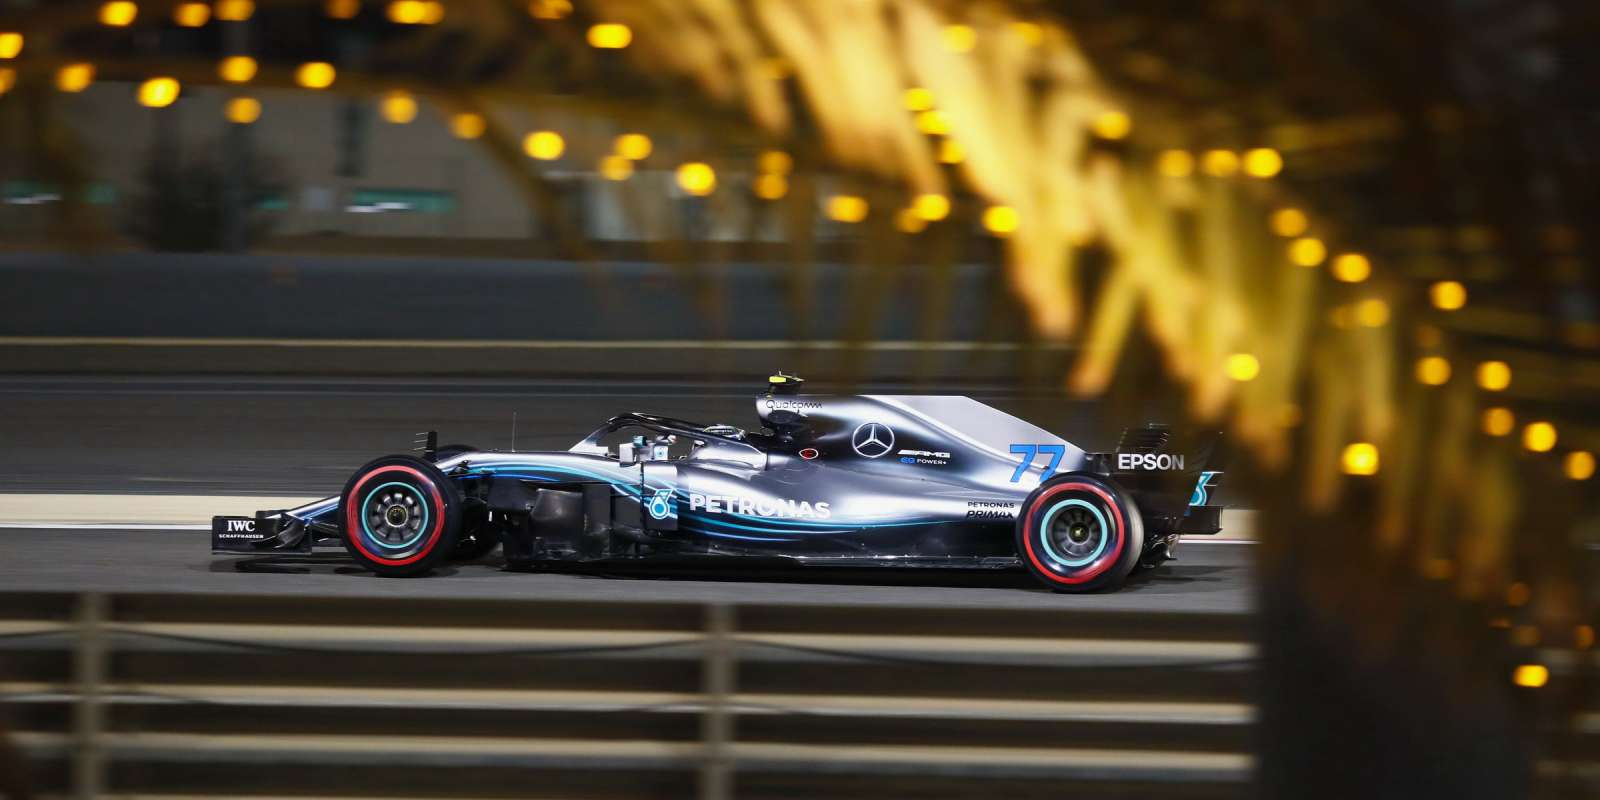 Friday images from the 2018 Bahrain Grand Prix